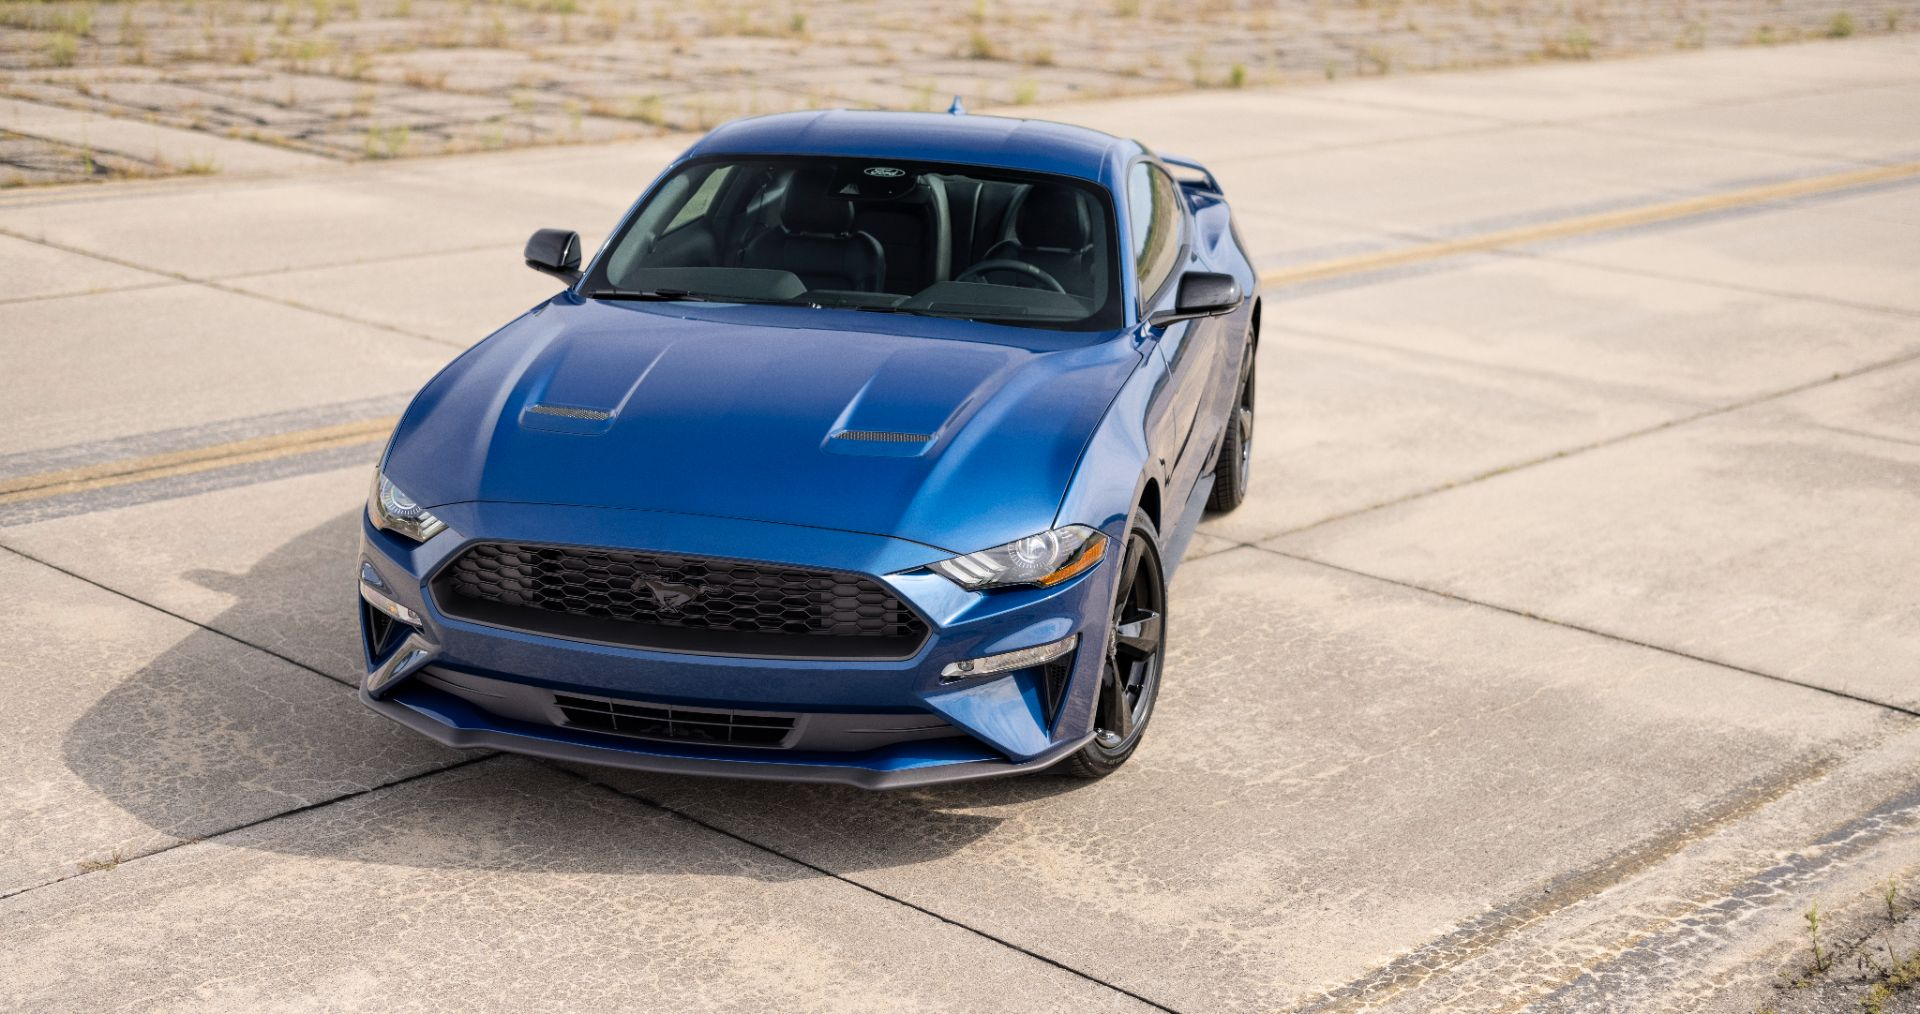 ford mustang stealth edition appearance package